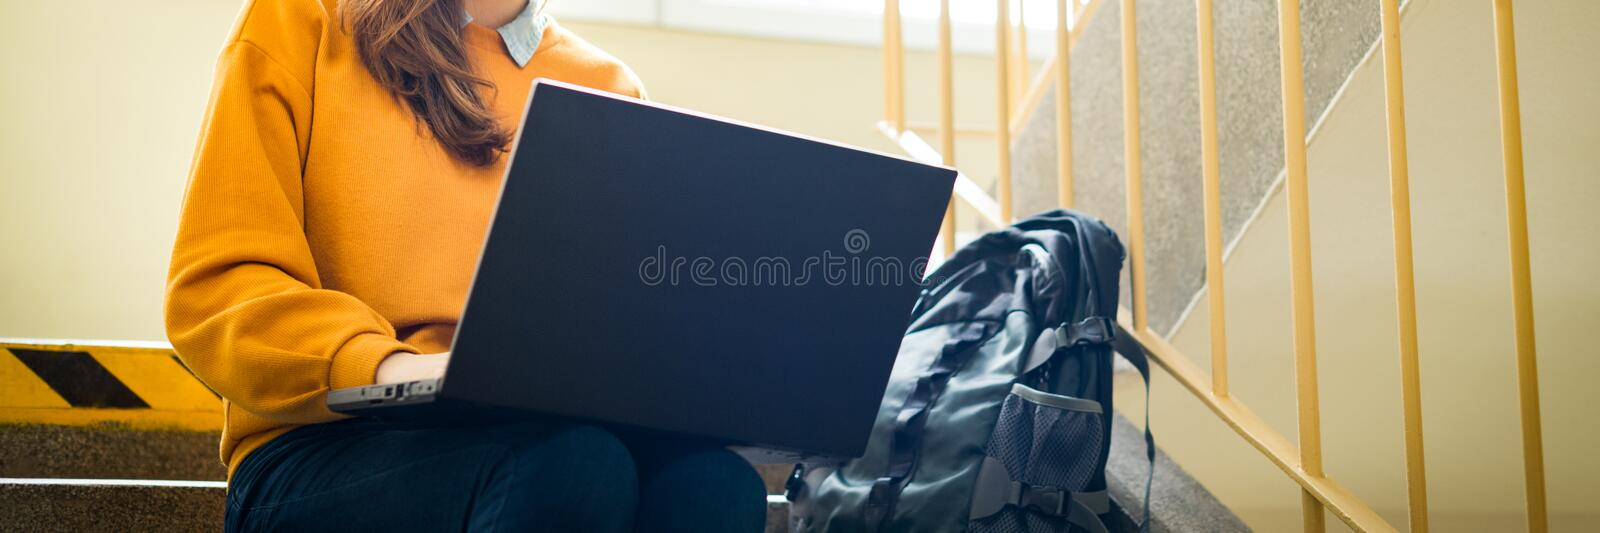 Young female college student sitting on stairs at school, writing essay on her laptop. Education concept. stock image